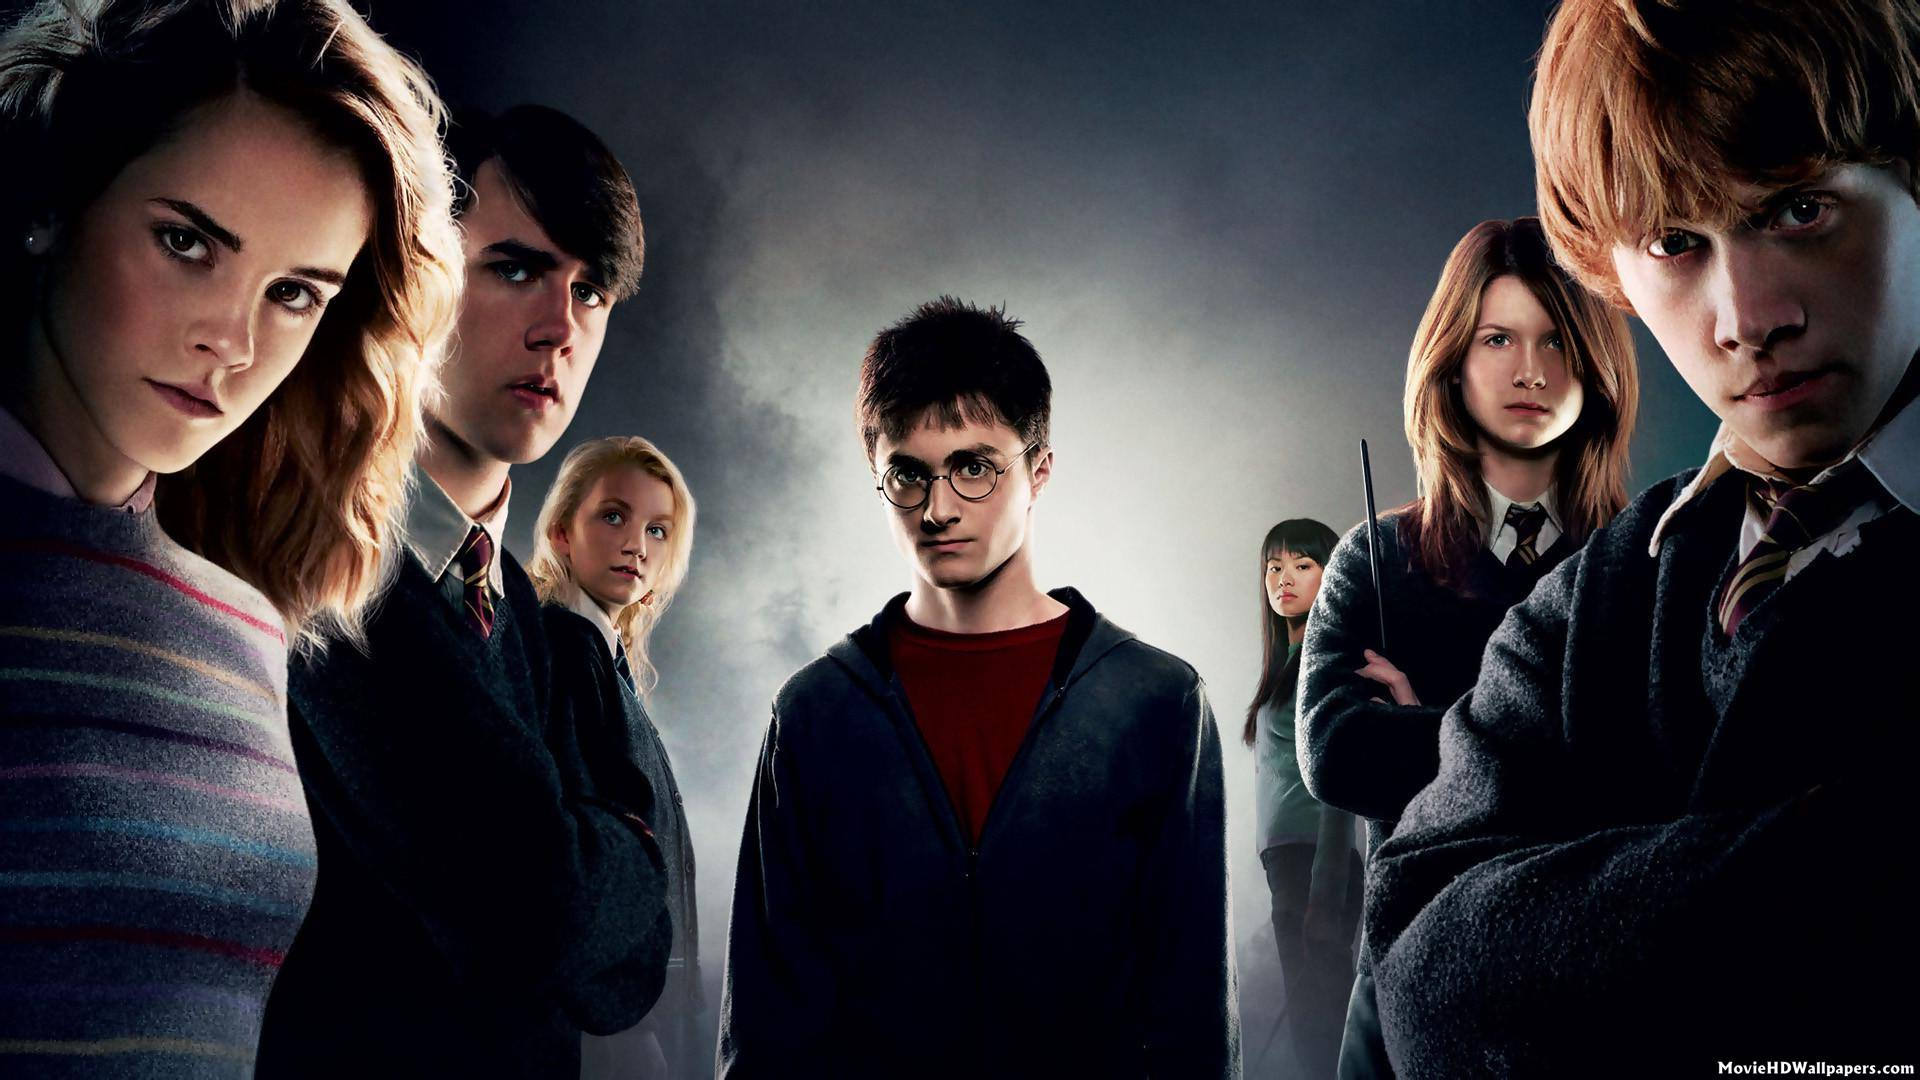 What Makes Harry Potter An Iconic Series